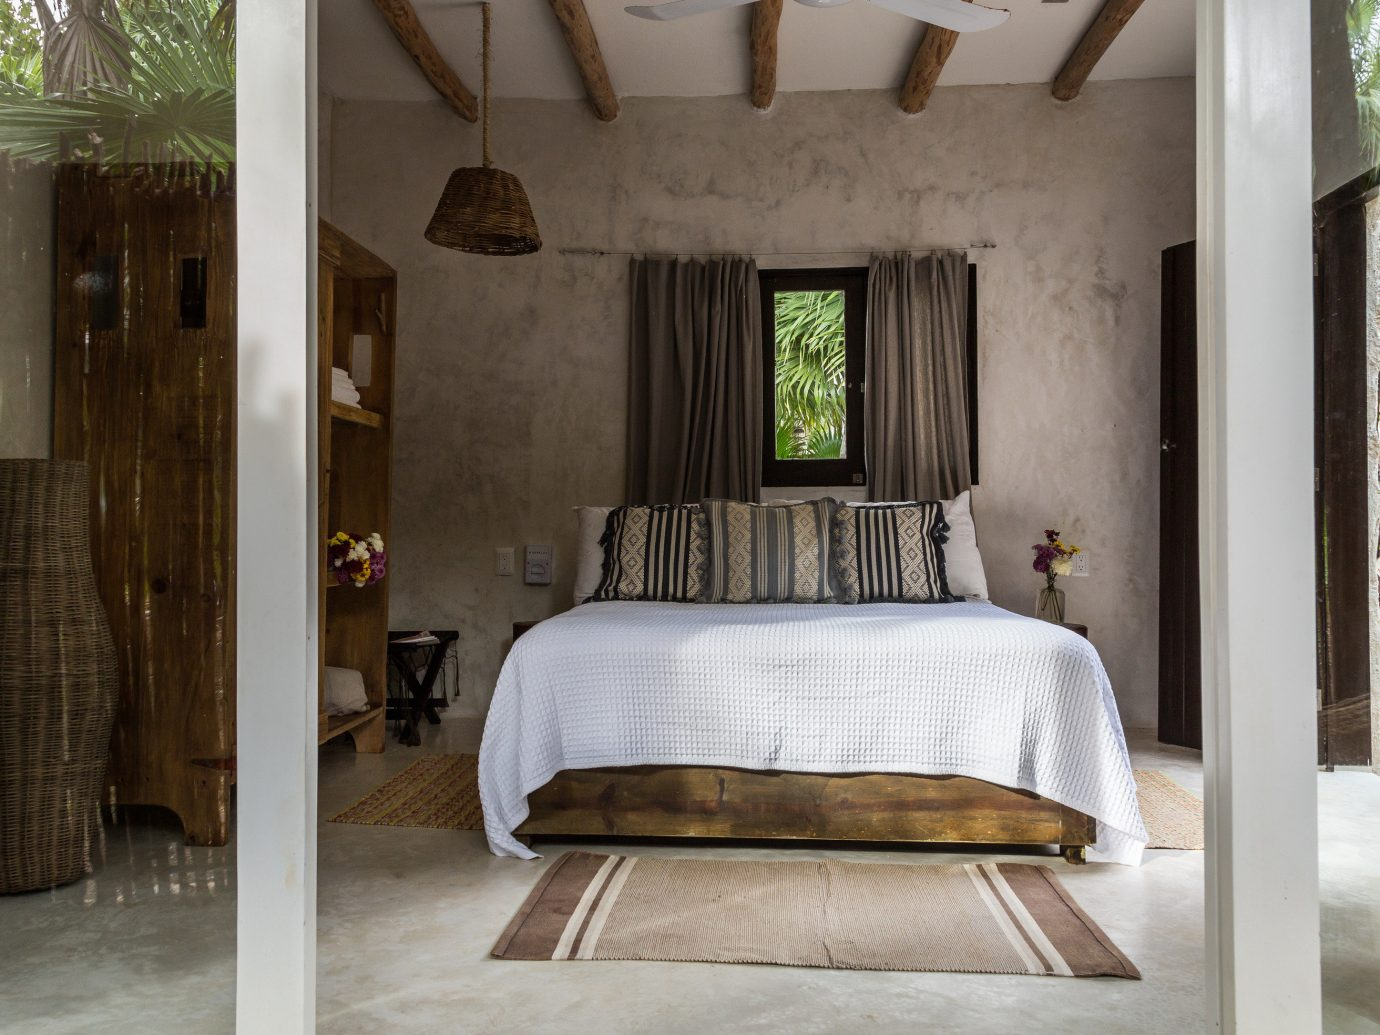 Boutique Hotels Hotels Mexico Tulum indoor floor room furniture interior design bed frame bed ceiling estate Bedroom home four poster house window chair